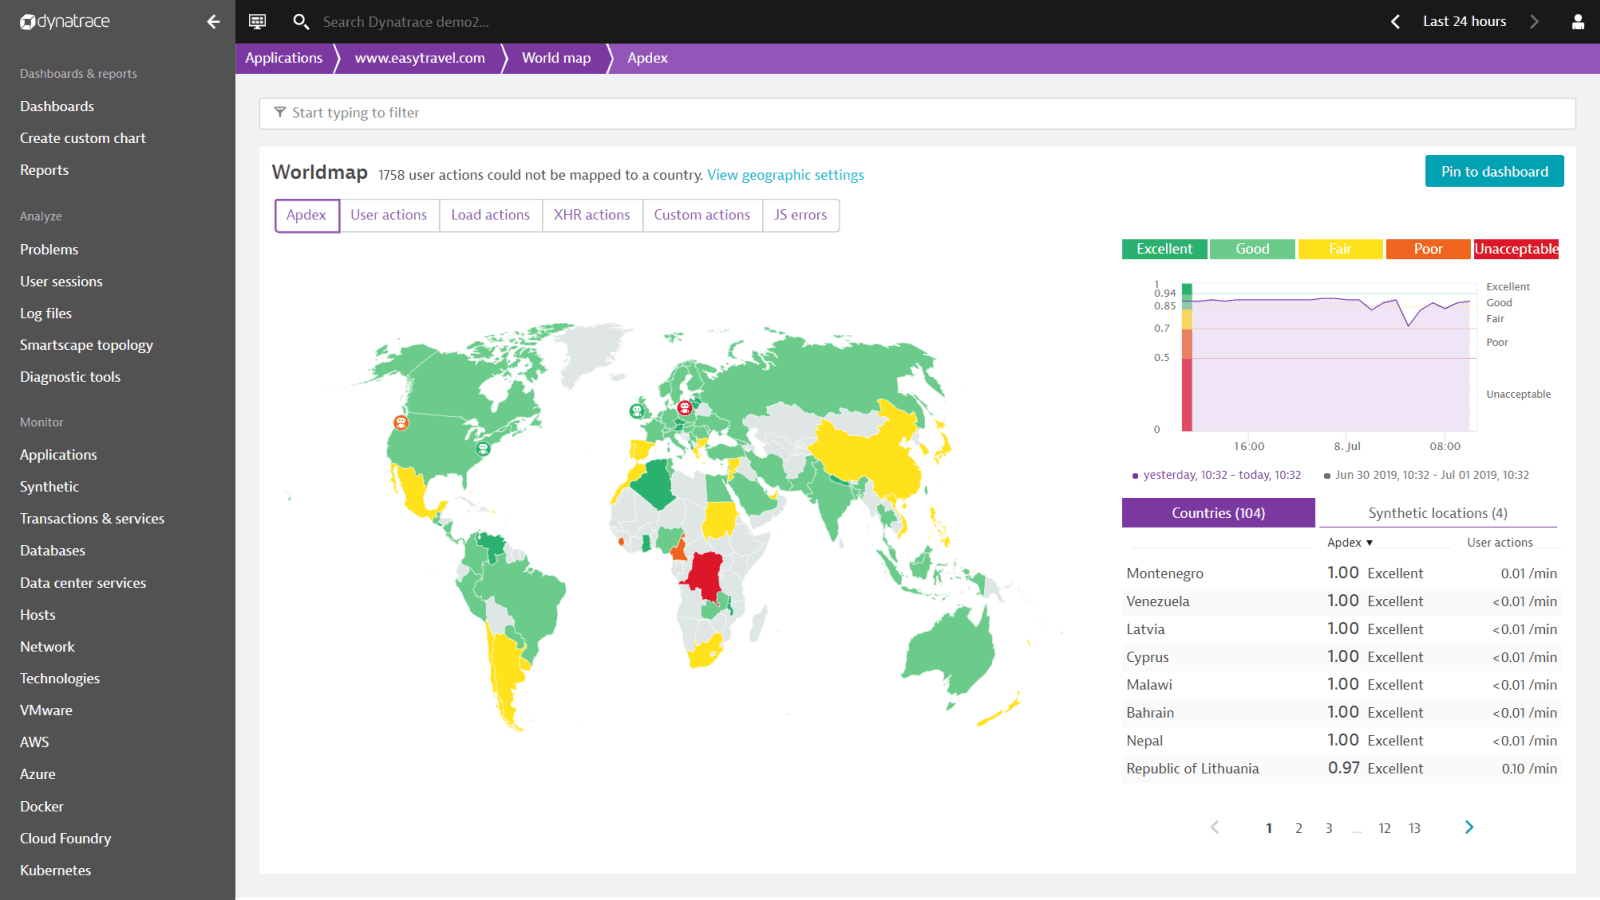 dynatrace_user_experience_management